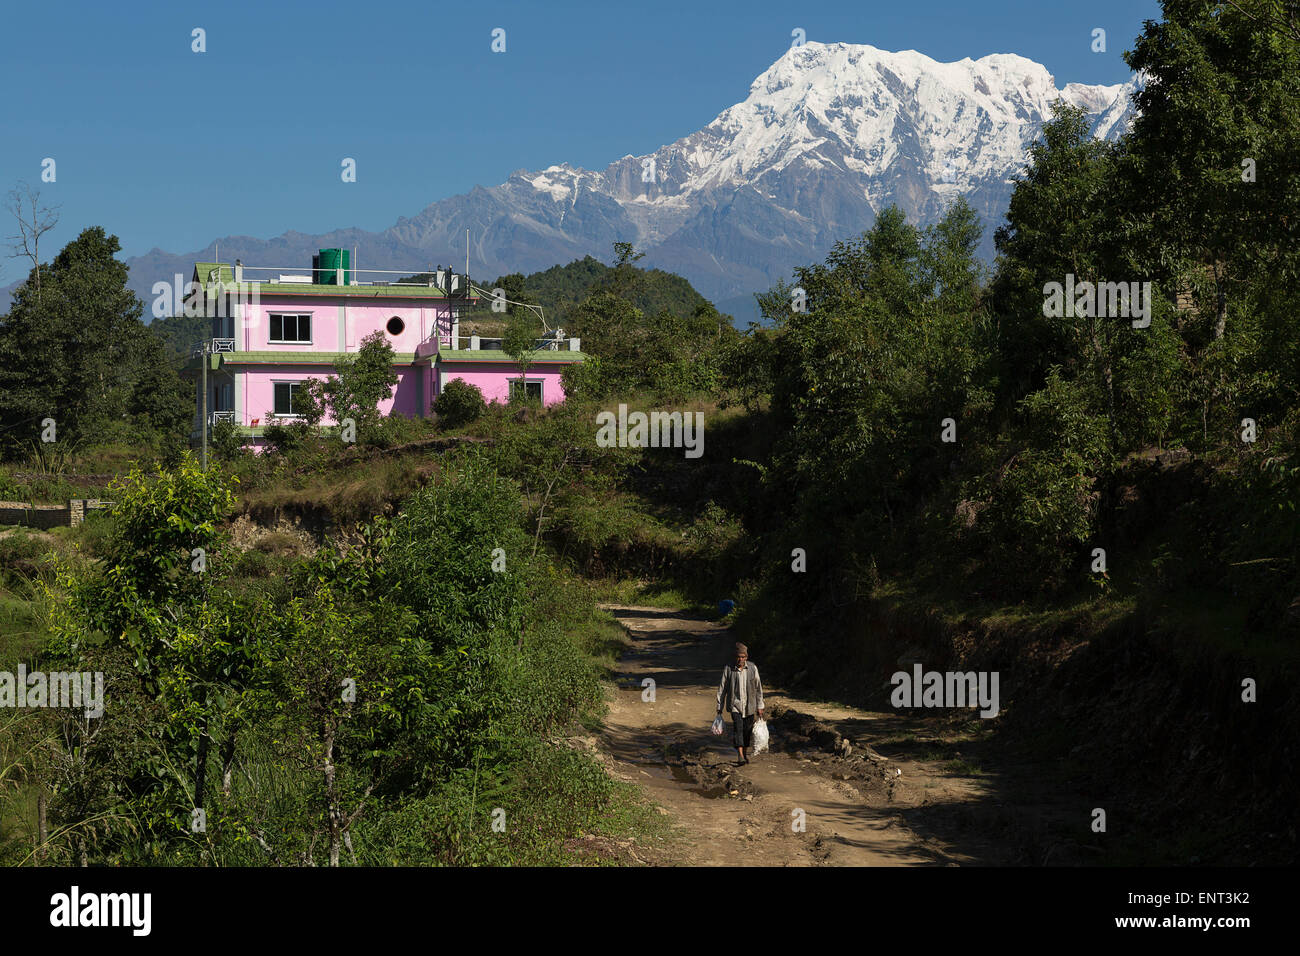 Walking under Annapurna South, Pokhara Area, Nepal - Stock Image